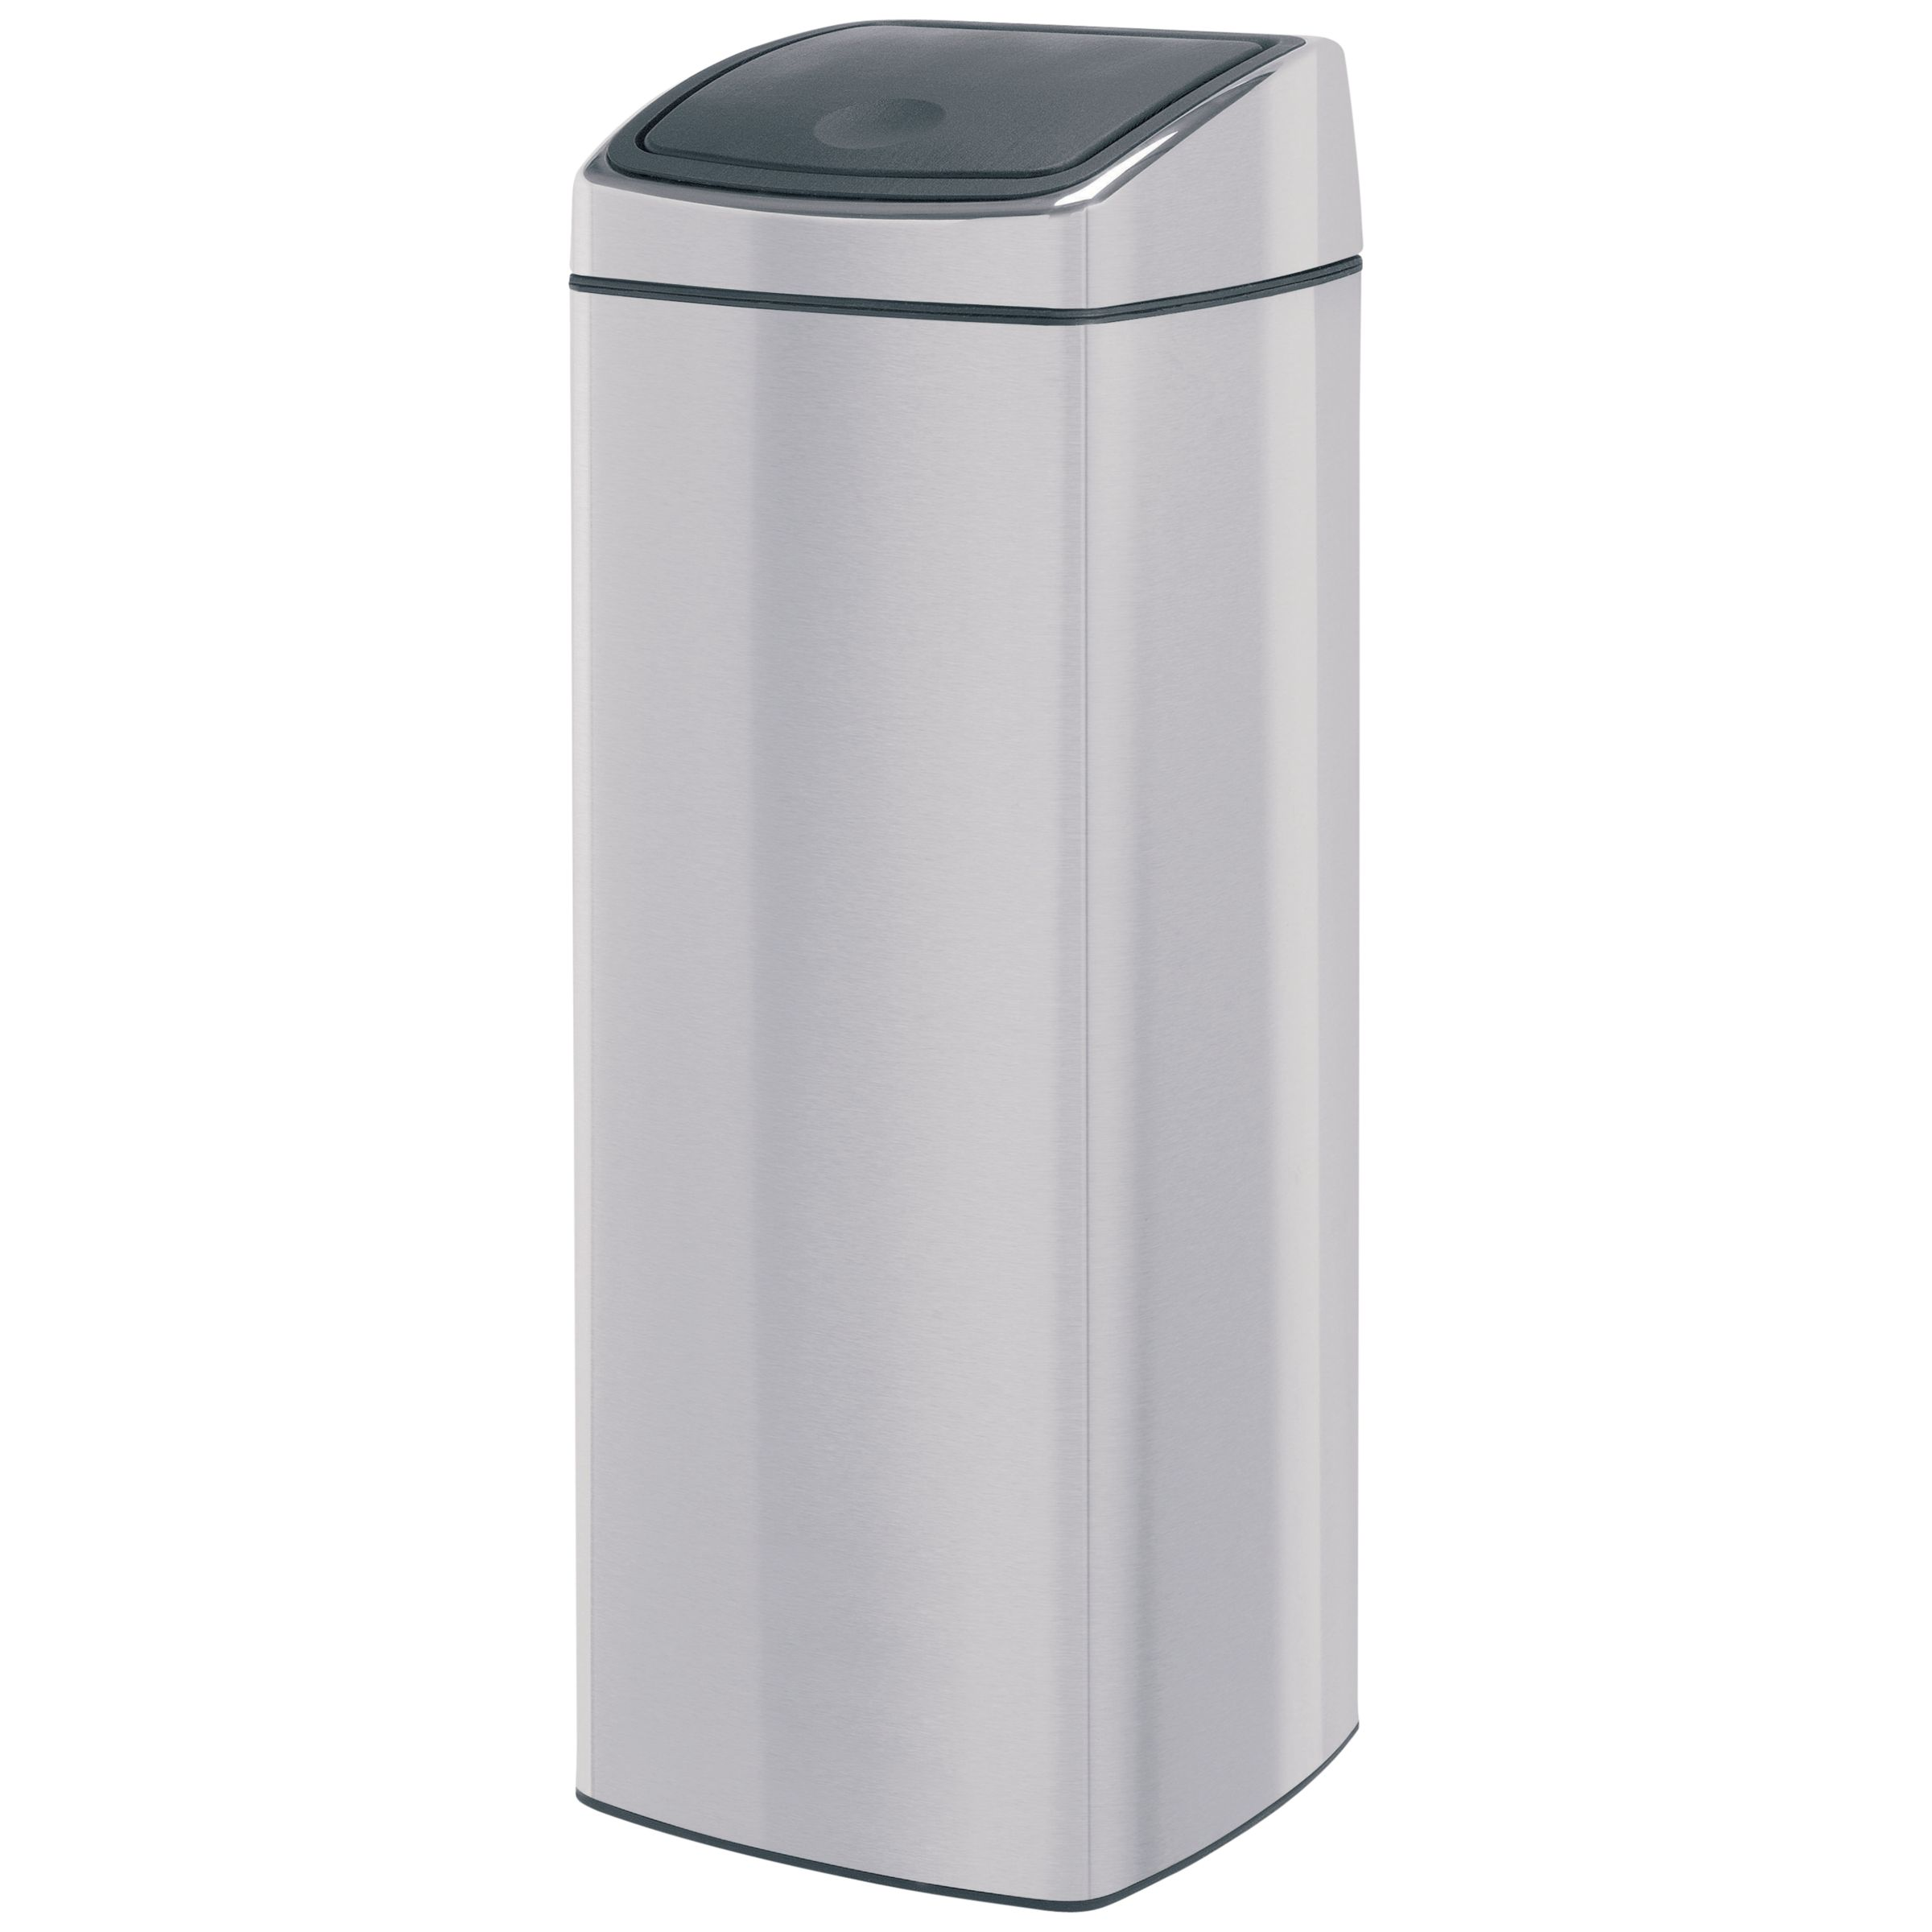 Brabantia Brabantia Rectangular Touch Bin, Fingerprint Proof Matt Steel, 25L